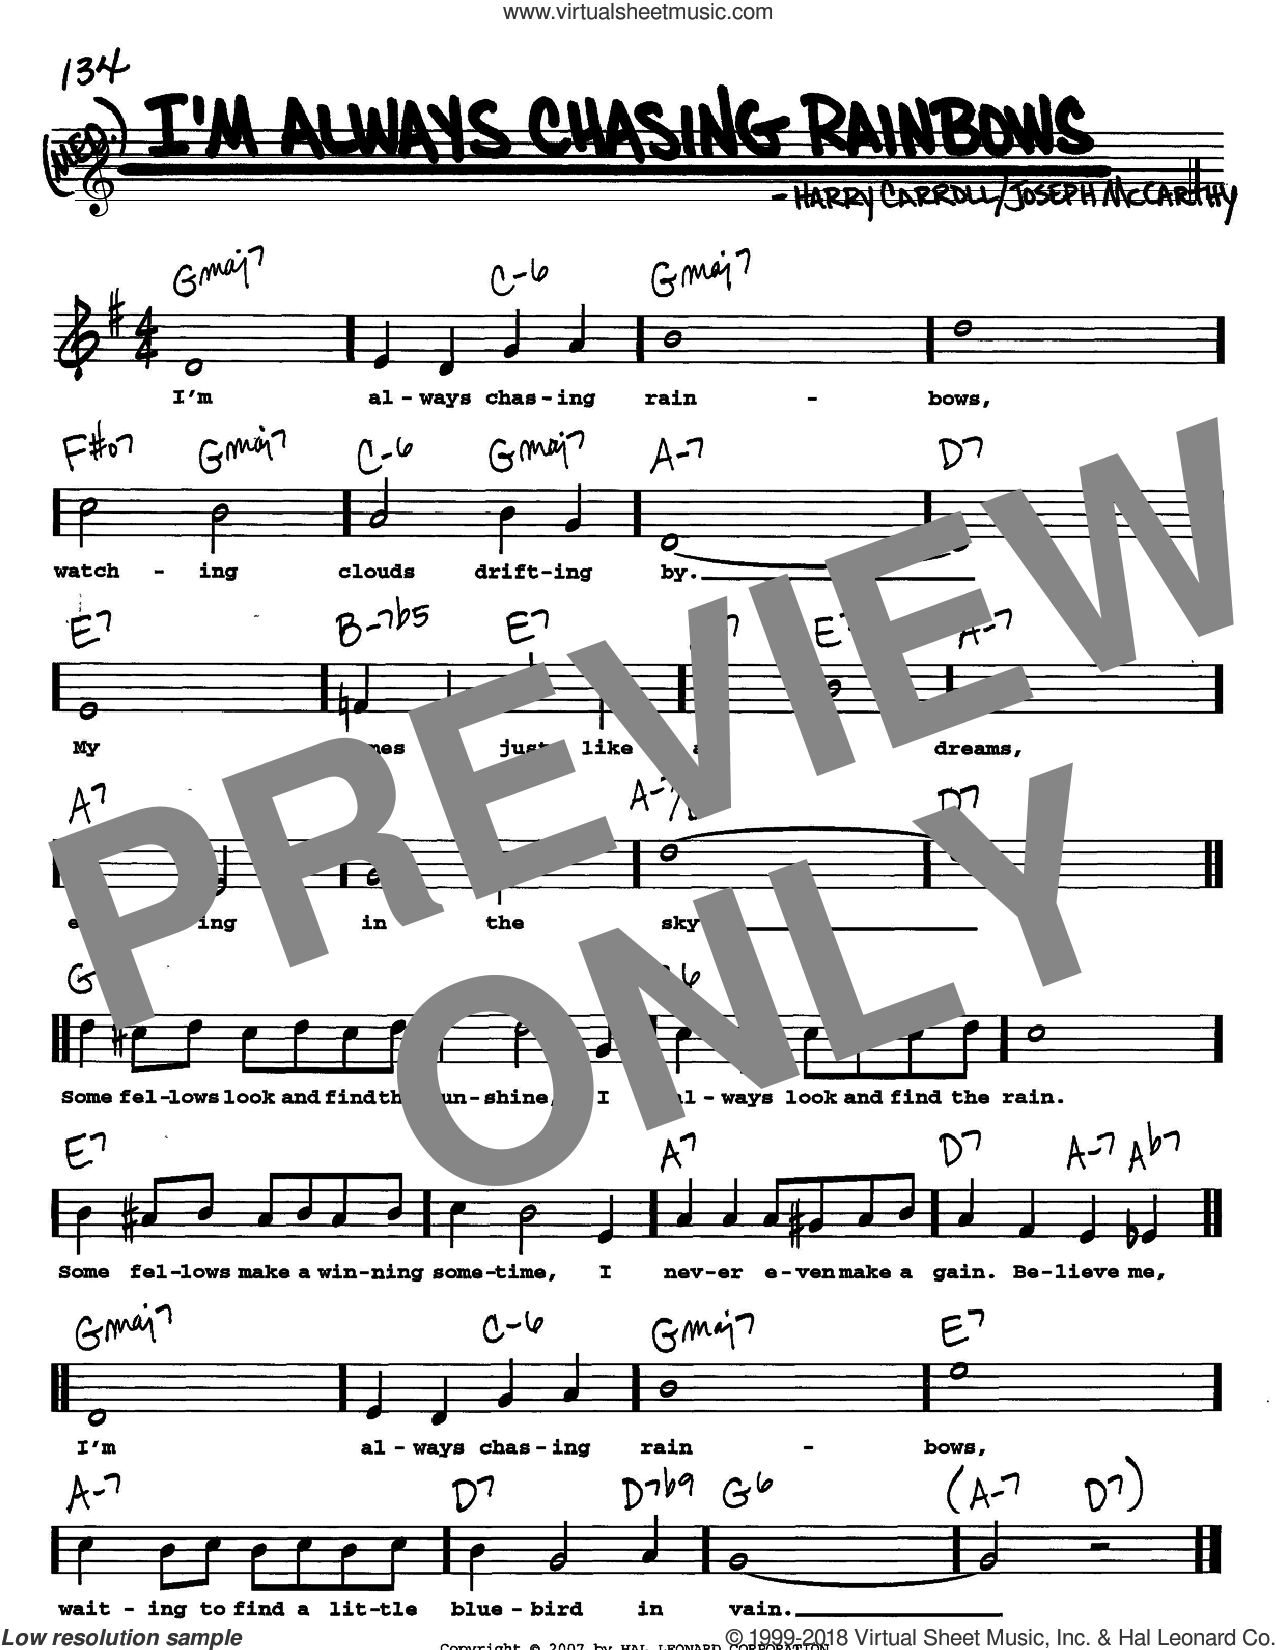 I'm Always Chasing Rainbows sheet music for voice and other instruments (Vocal Volume 2) by Harry Carroll and Joseph McCarthy. Score Image Preview.